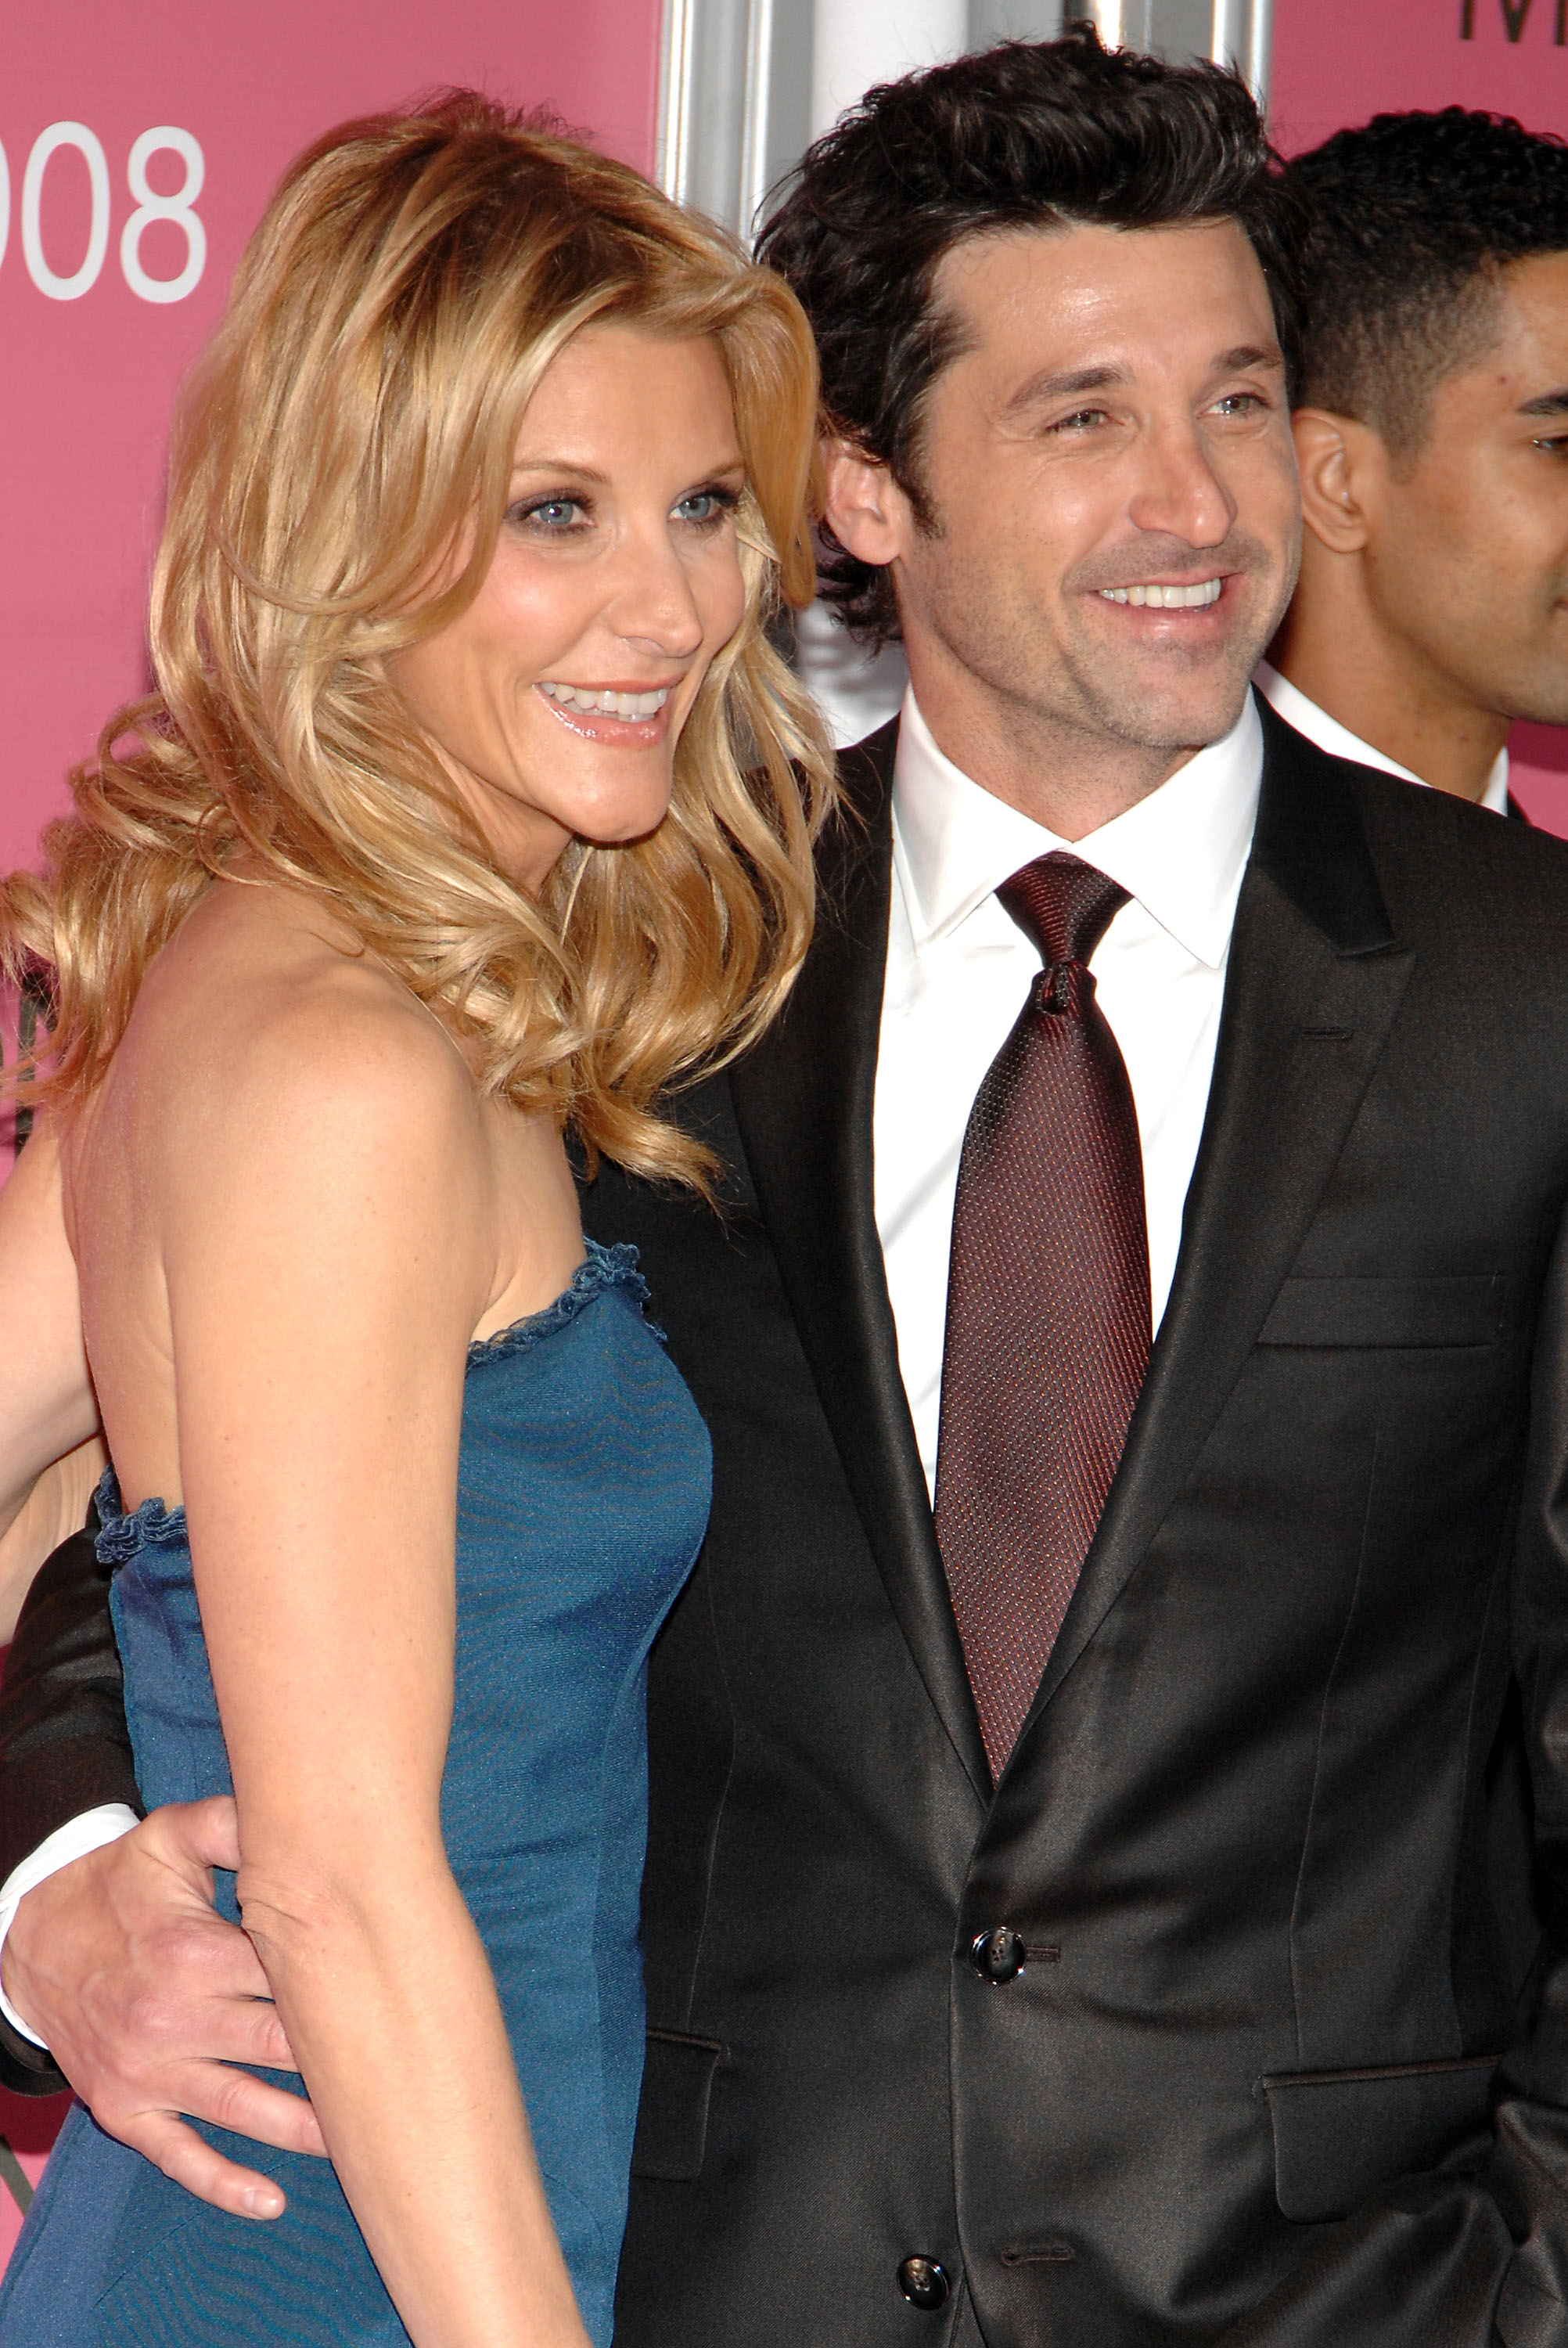 Mrs. McDreamy: Is Patrick Dempsey Married?